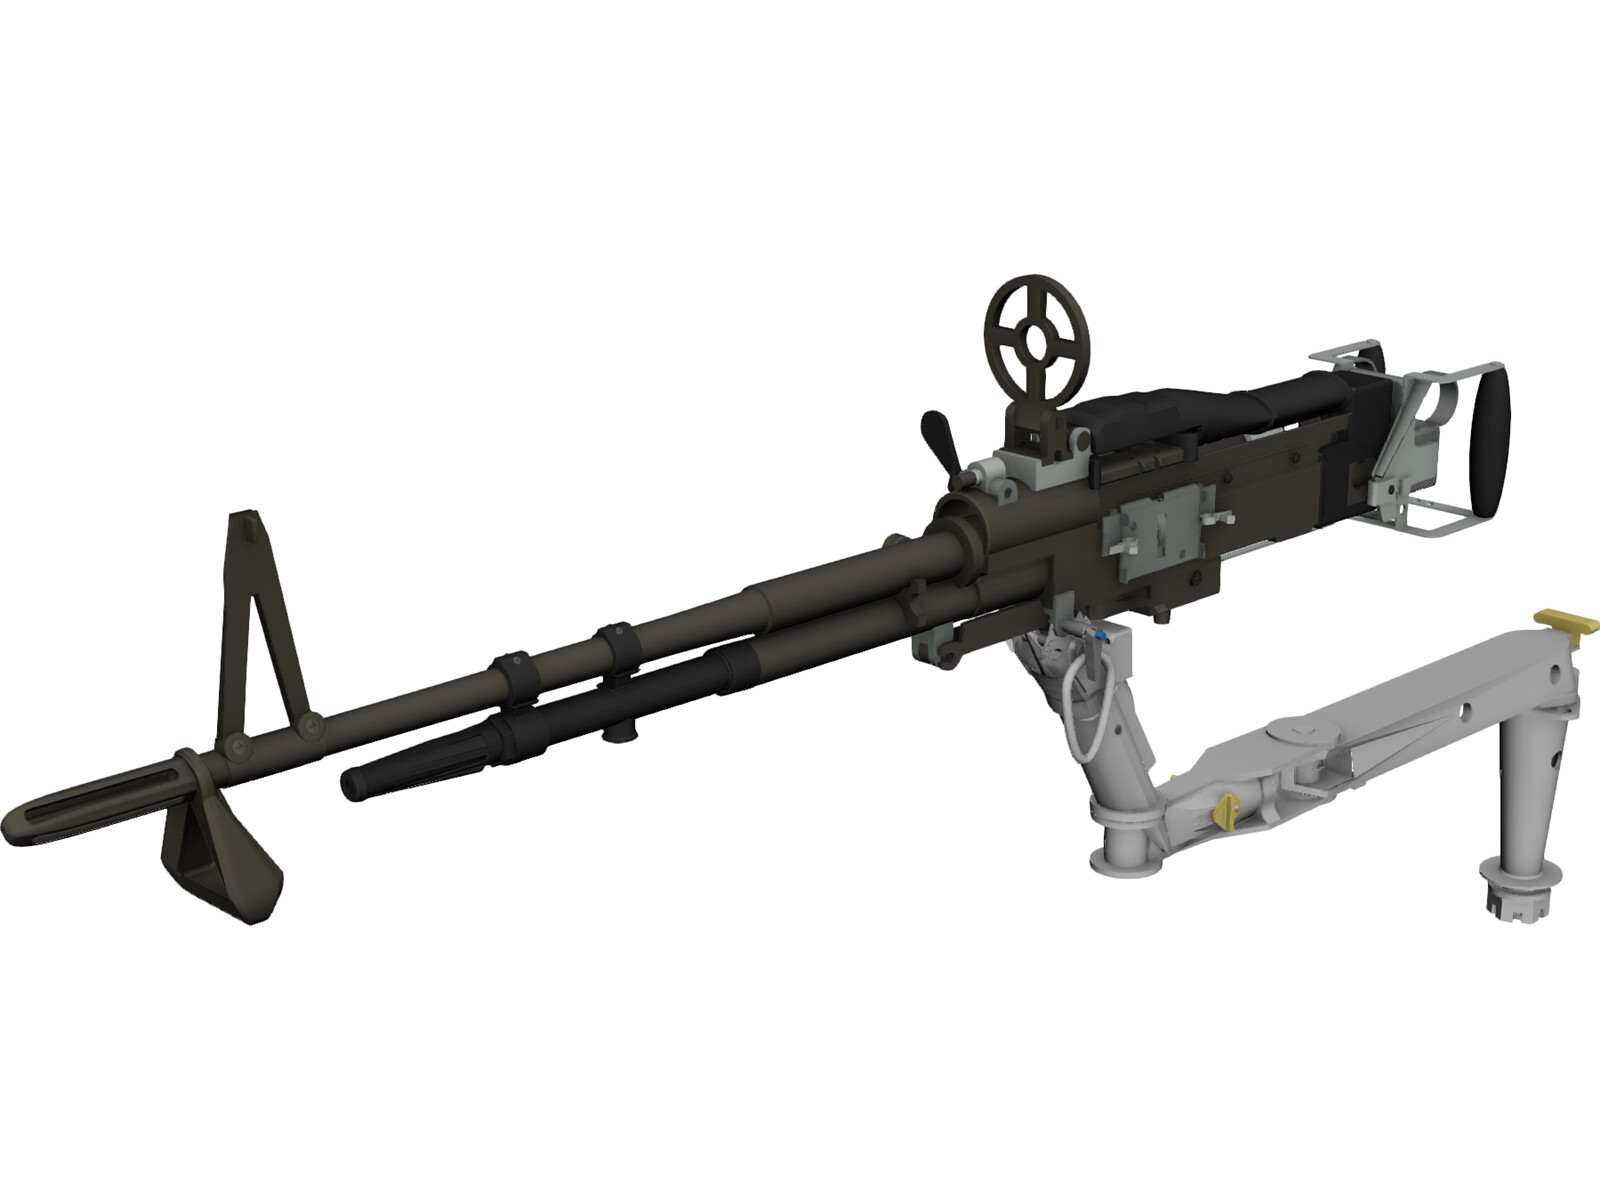 M60 7.62mm Machine Gun and Arm